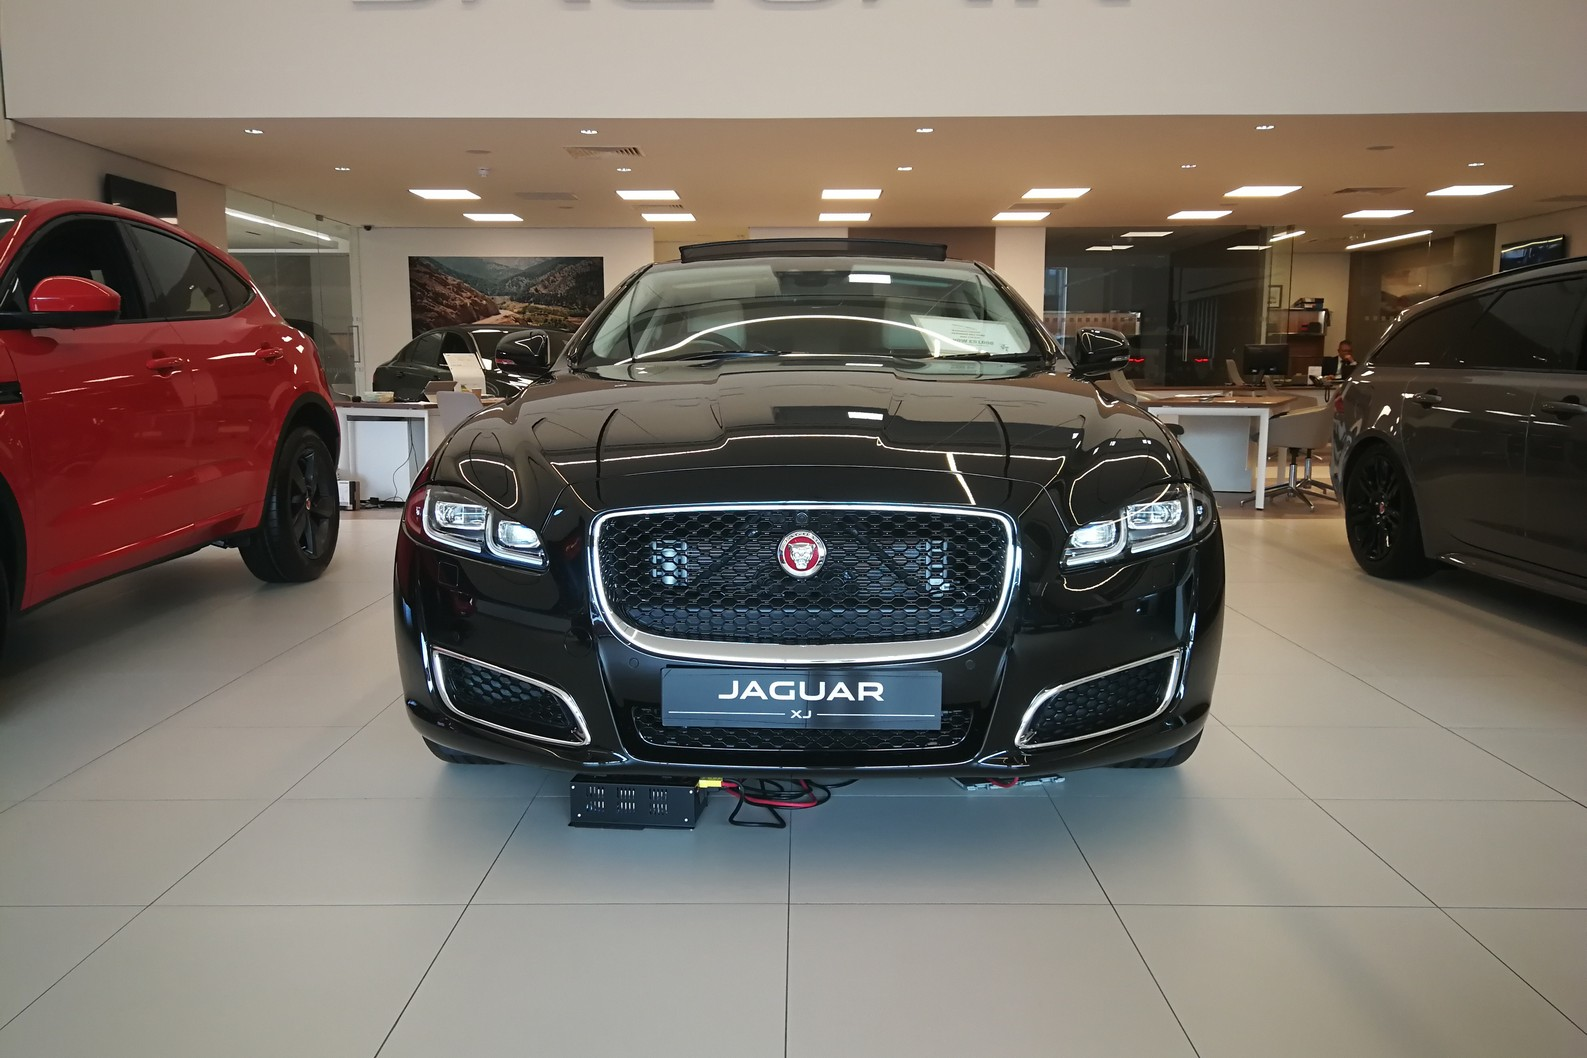 Jaguar XJ 3.0d V6 XJ50 LWB - Delivery Mileage - Surround Camera - Heated and cooled S image 2